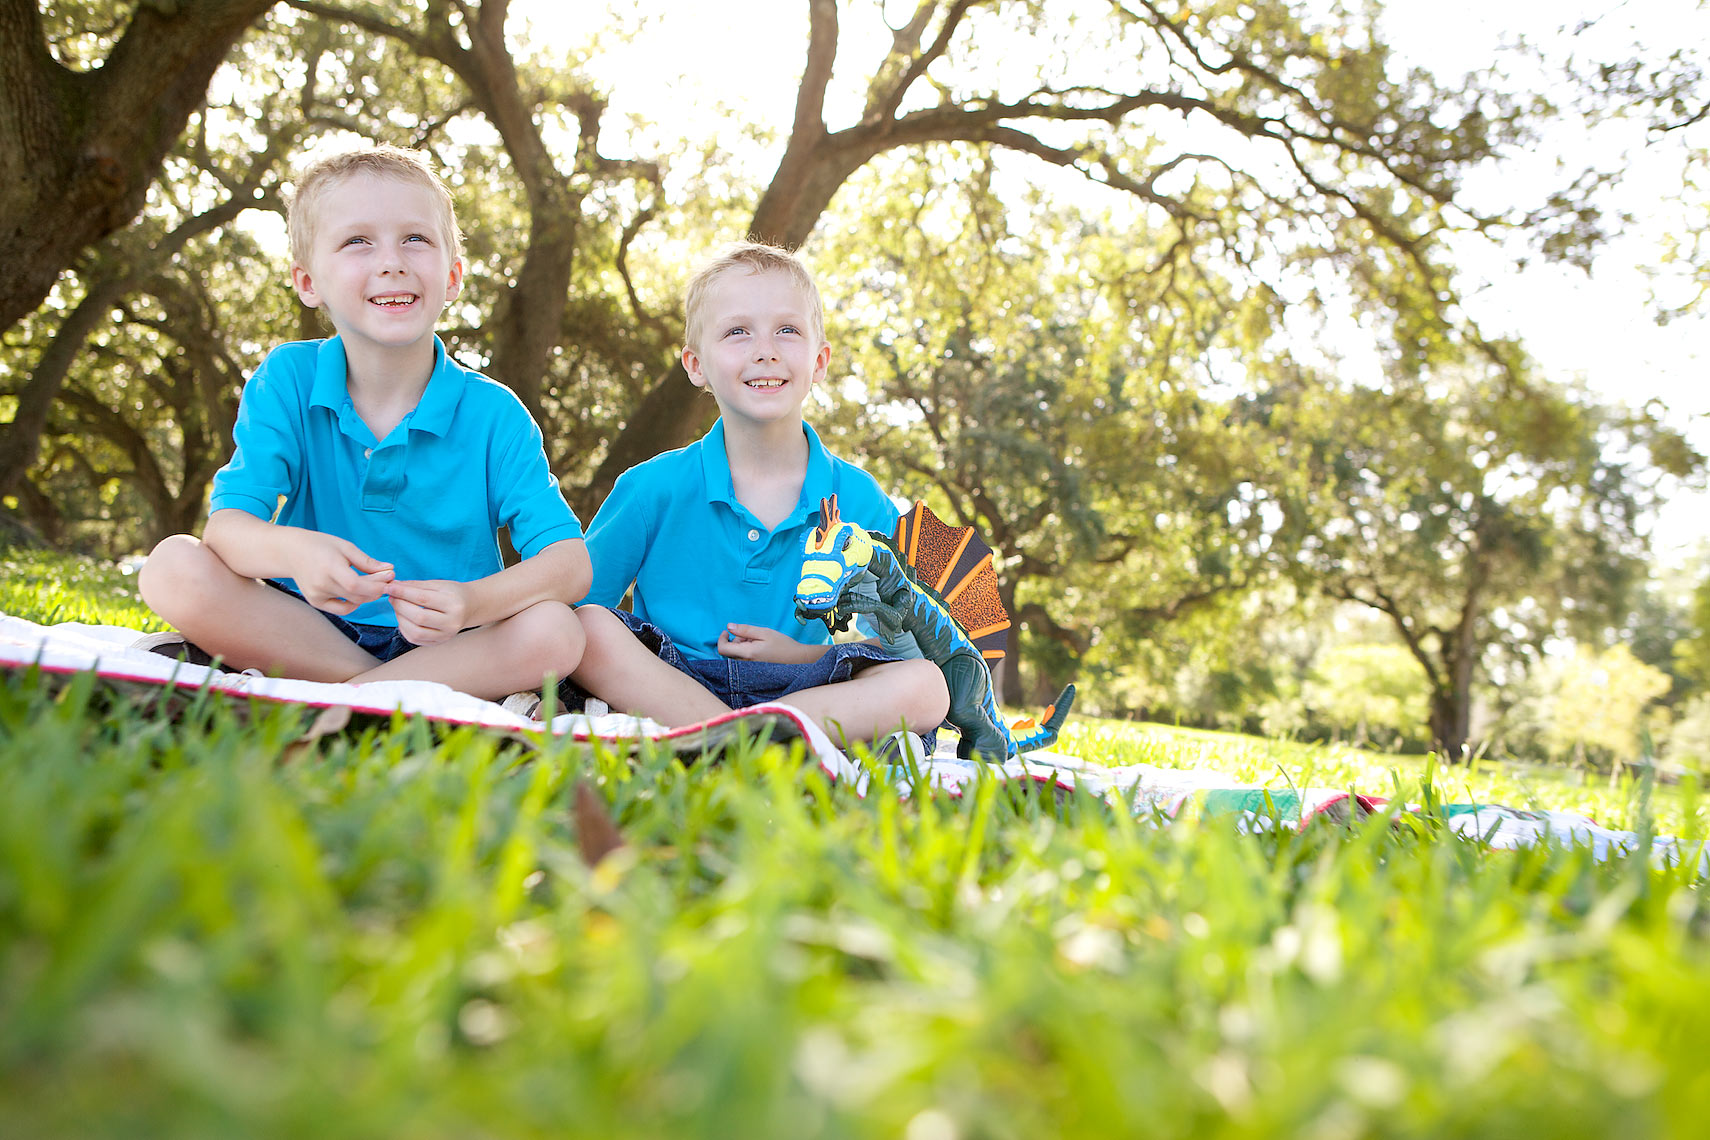 twin boys sitting on grass with blanket, park _2387_Robert-Holland.jpg